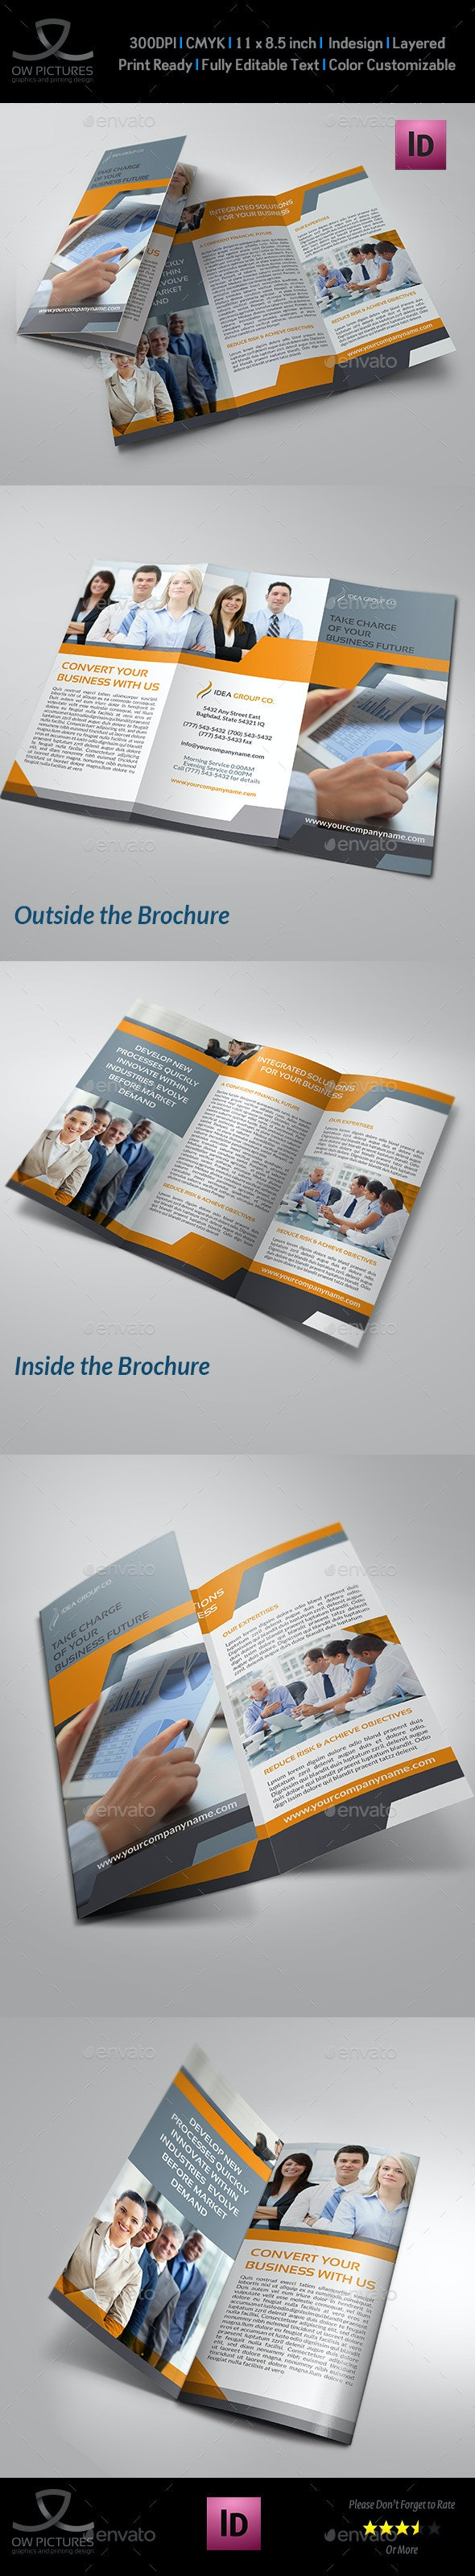 Company Brochure Tri-Fold Template Vol.16 - Corporate Brochures